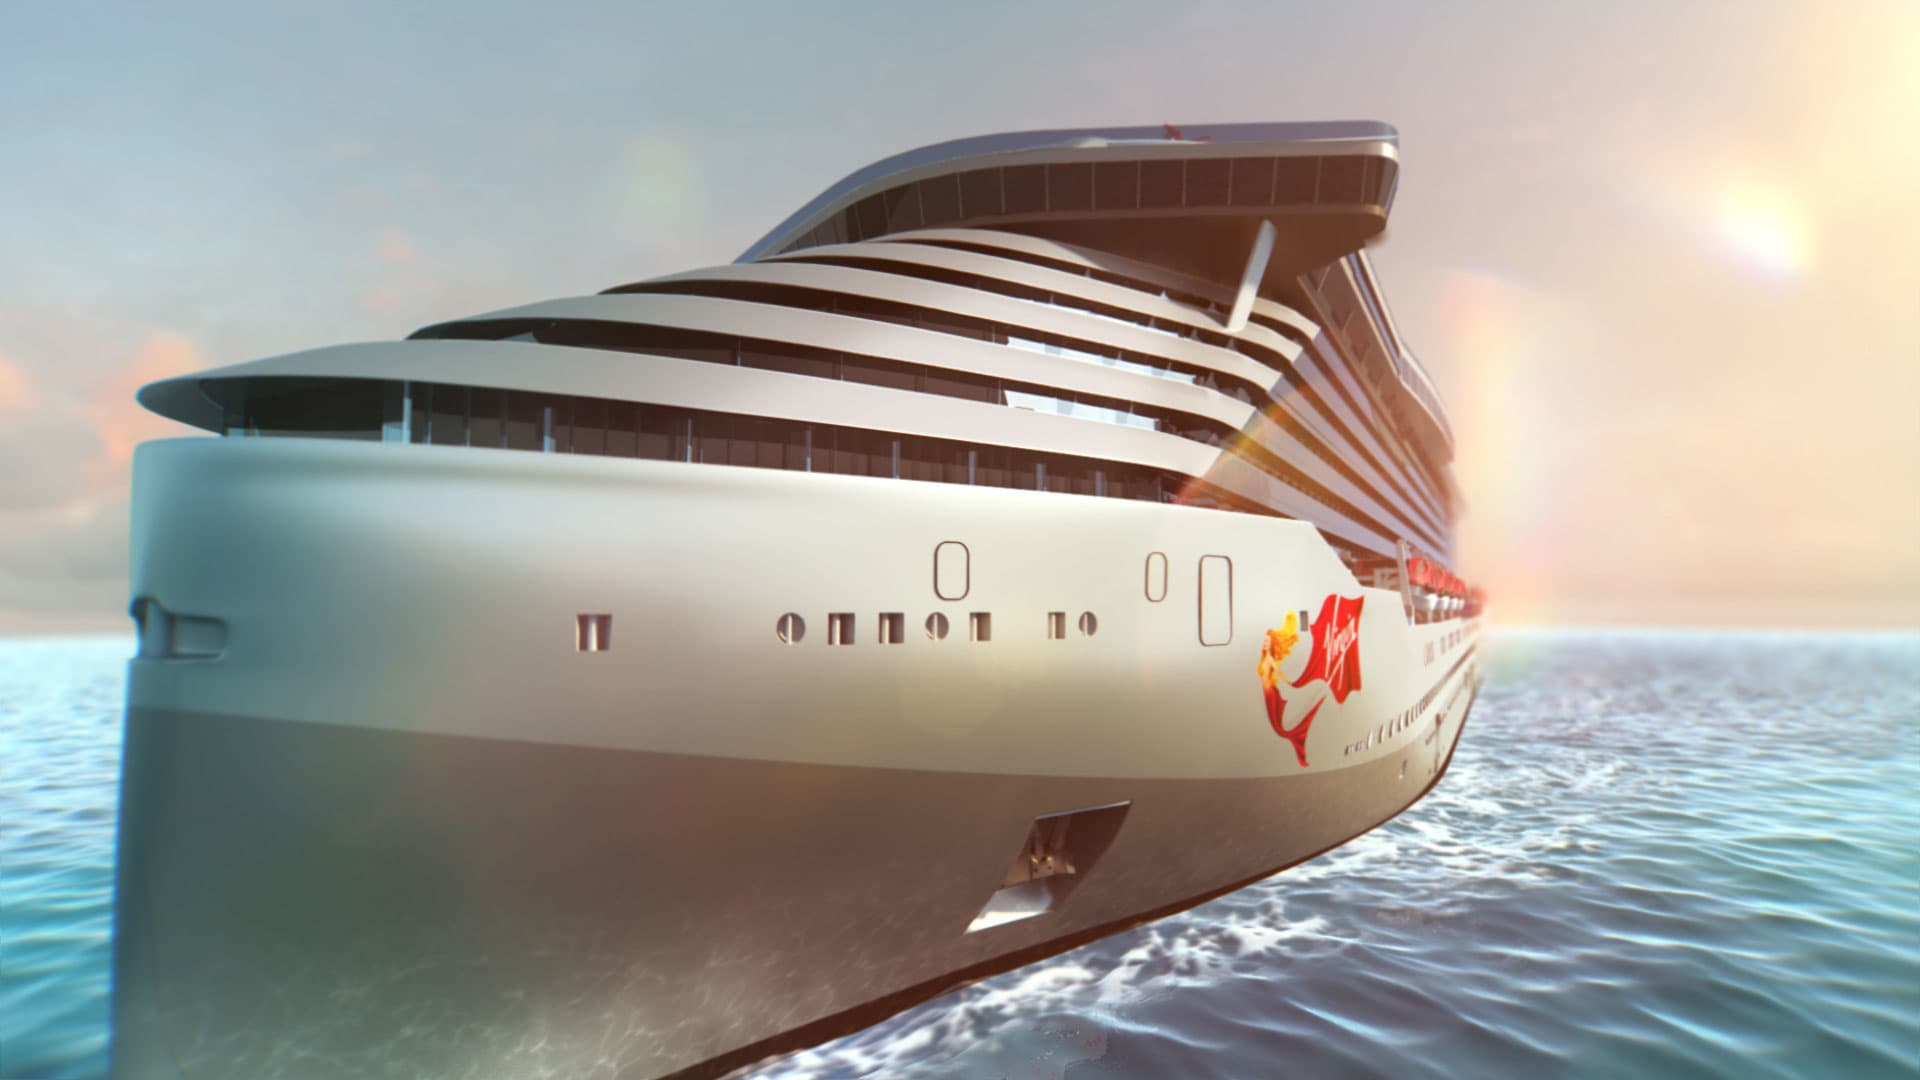 Richard Branson looks to disrupt cruise industry with Virgin Voyages